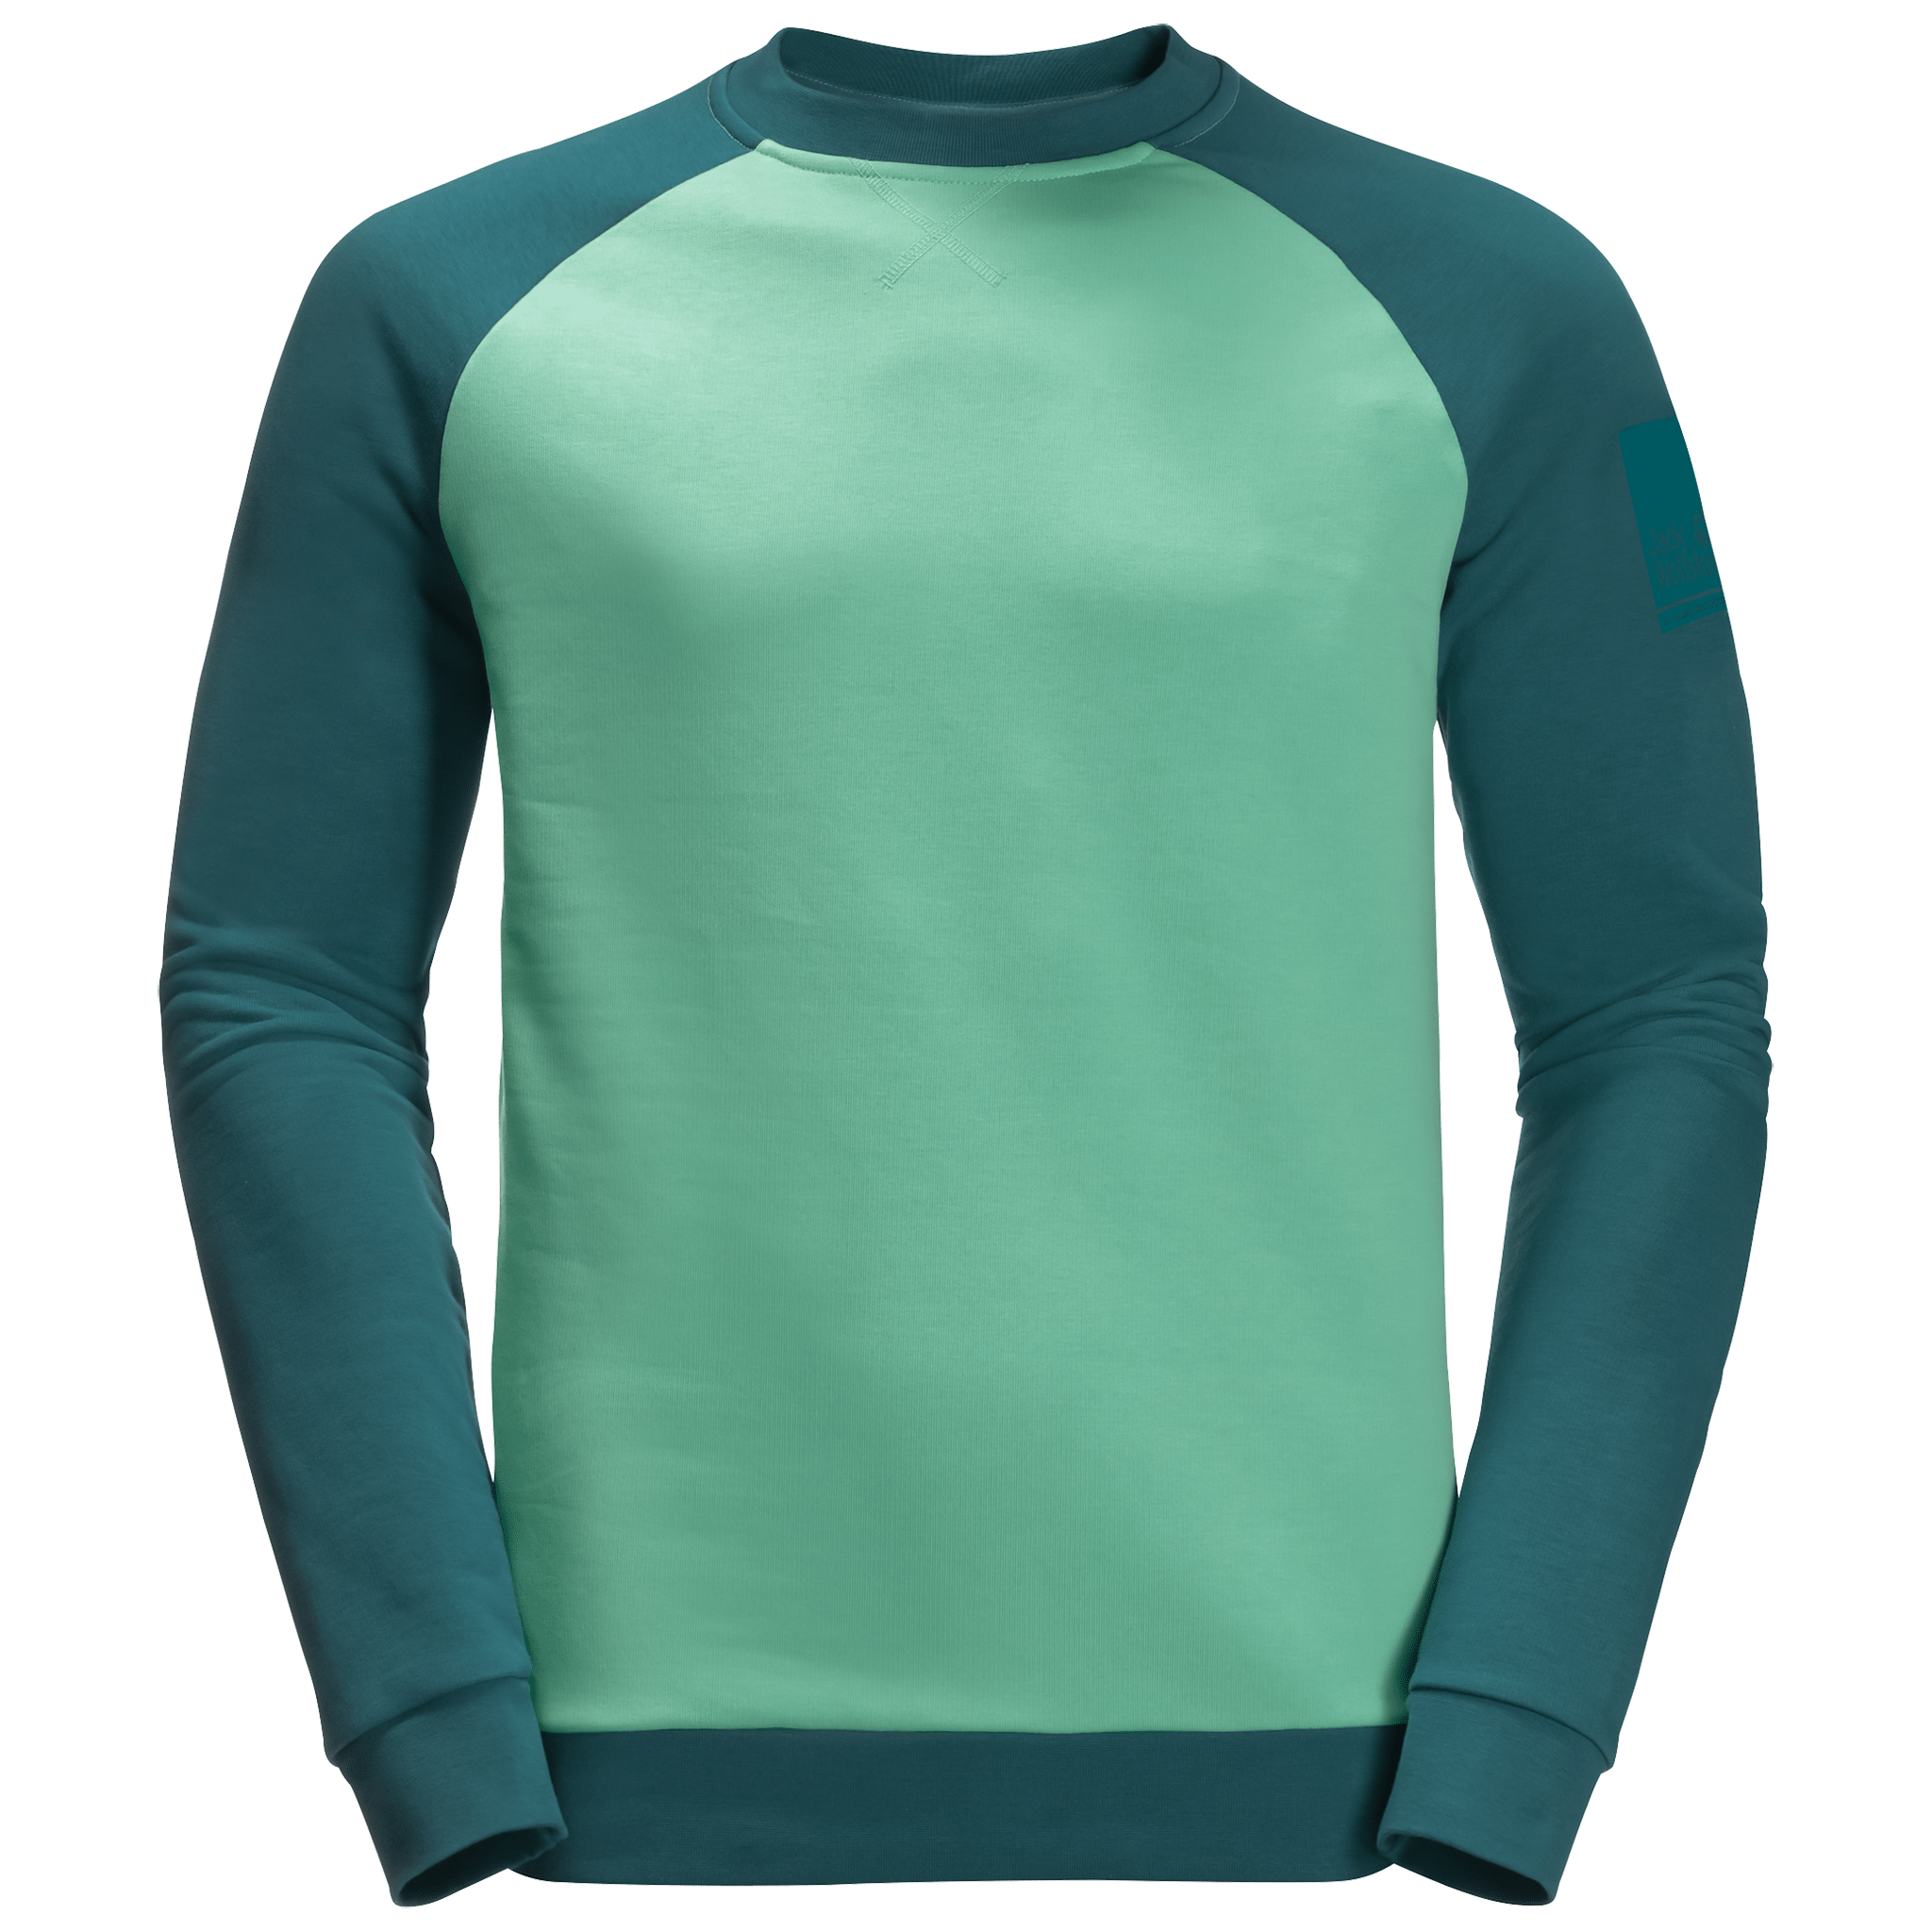 Pacific Green French Terry Sweatshirt